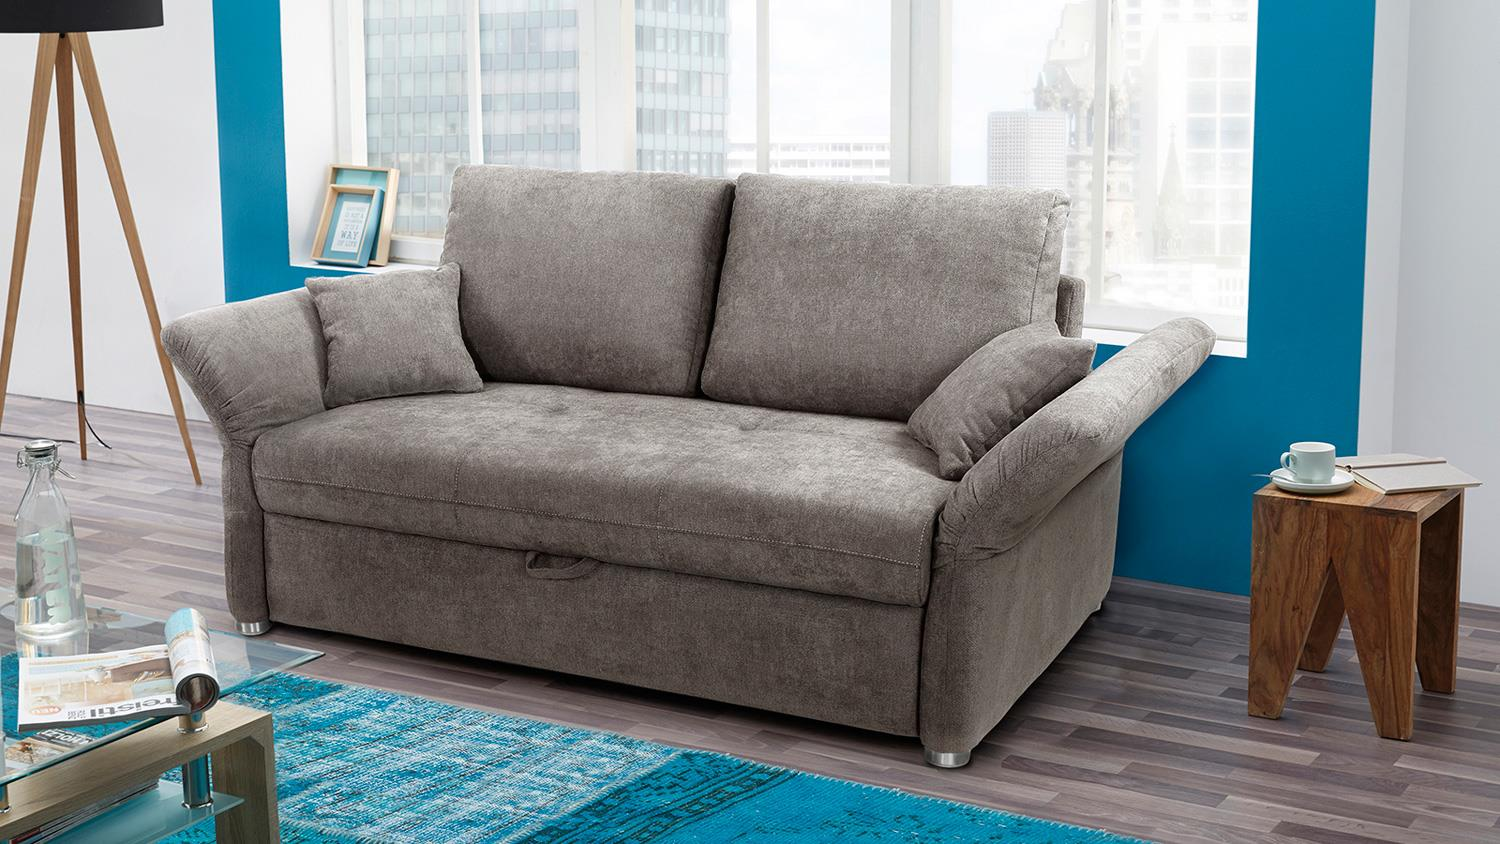 Funktionssofa luca sofa in greige mit bettfunktion 140 cm for Sofa mit bettfunktion